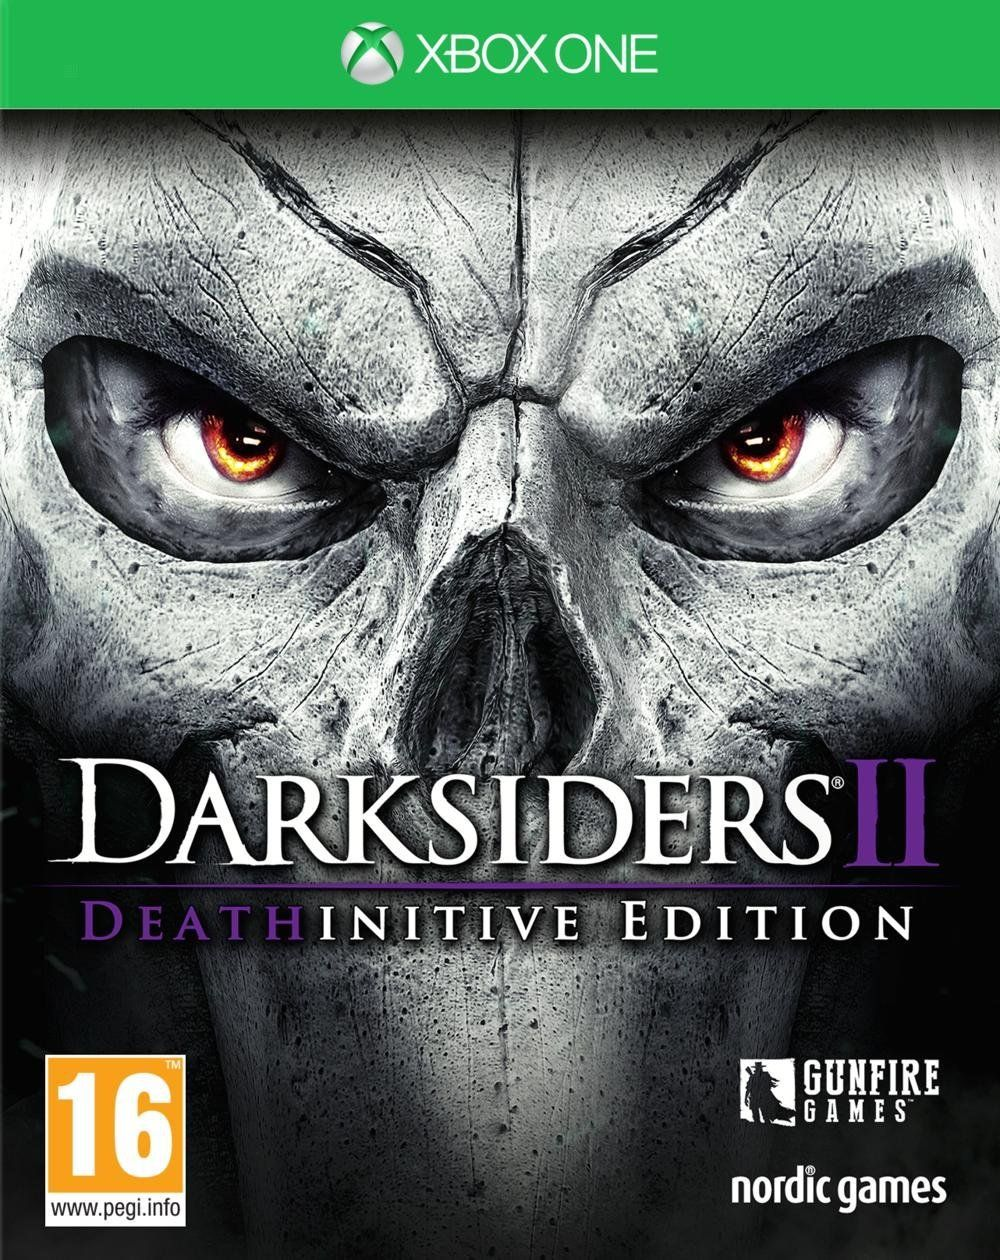 Darksiders II Deathinitive Edition (Xbox One) - 1